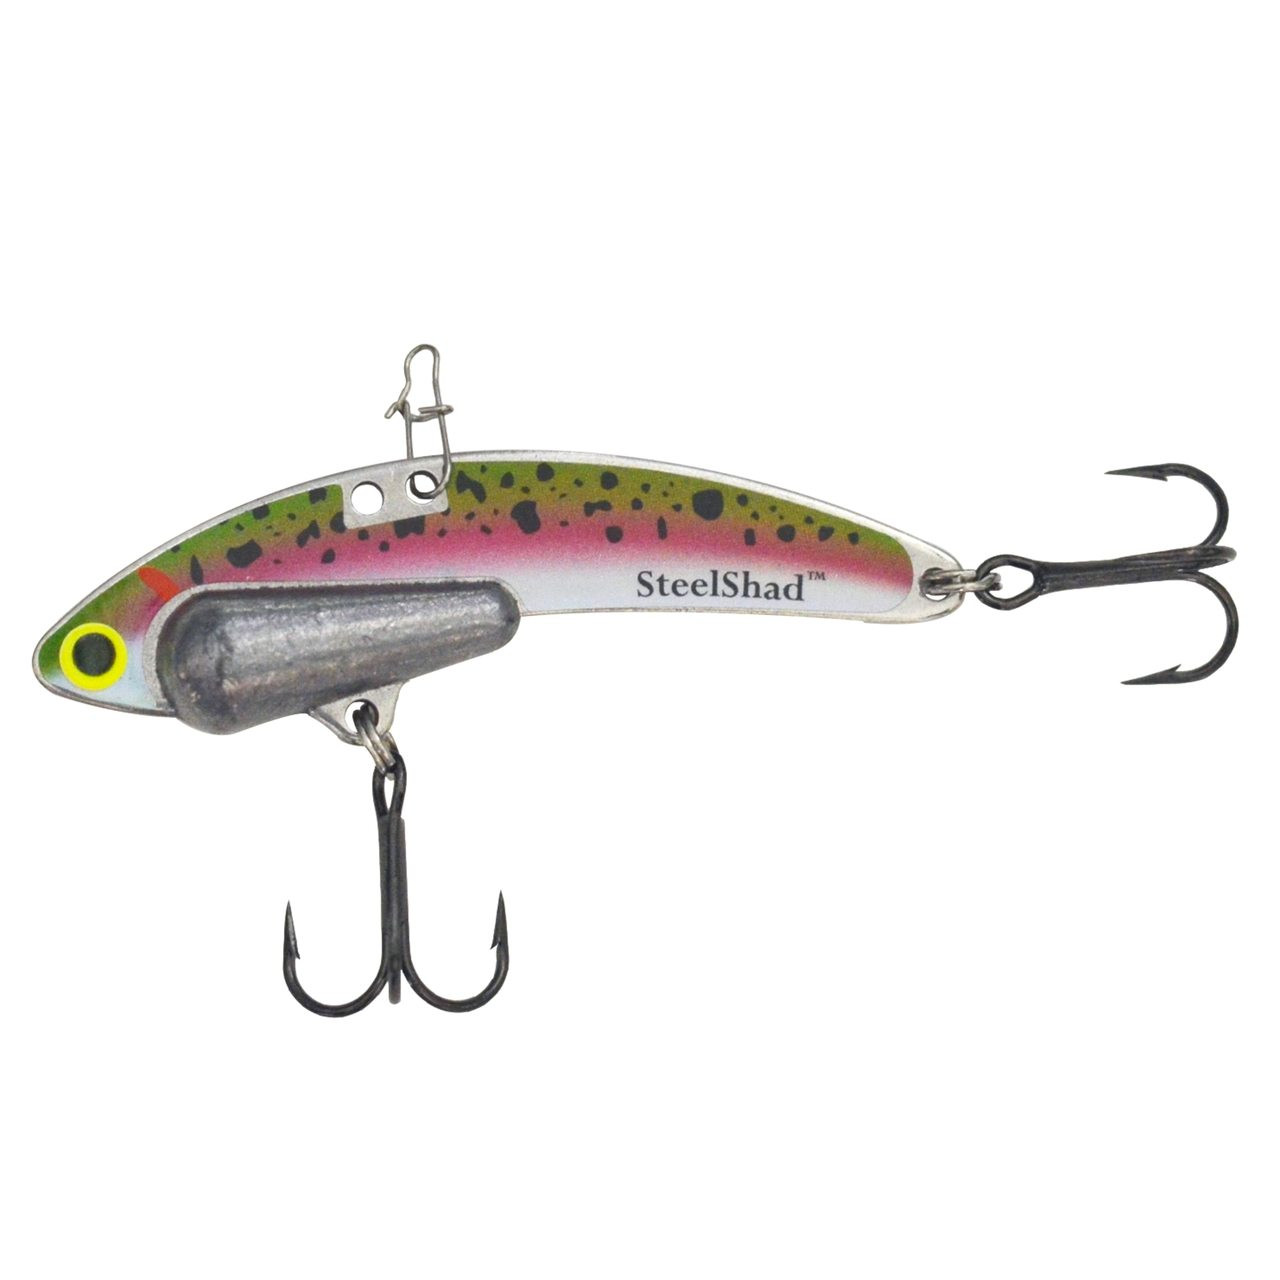 Trout Heavy Series - 1/2 oz., #8 VMC Black Nickle Hooks, and Line Clip